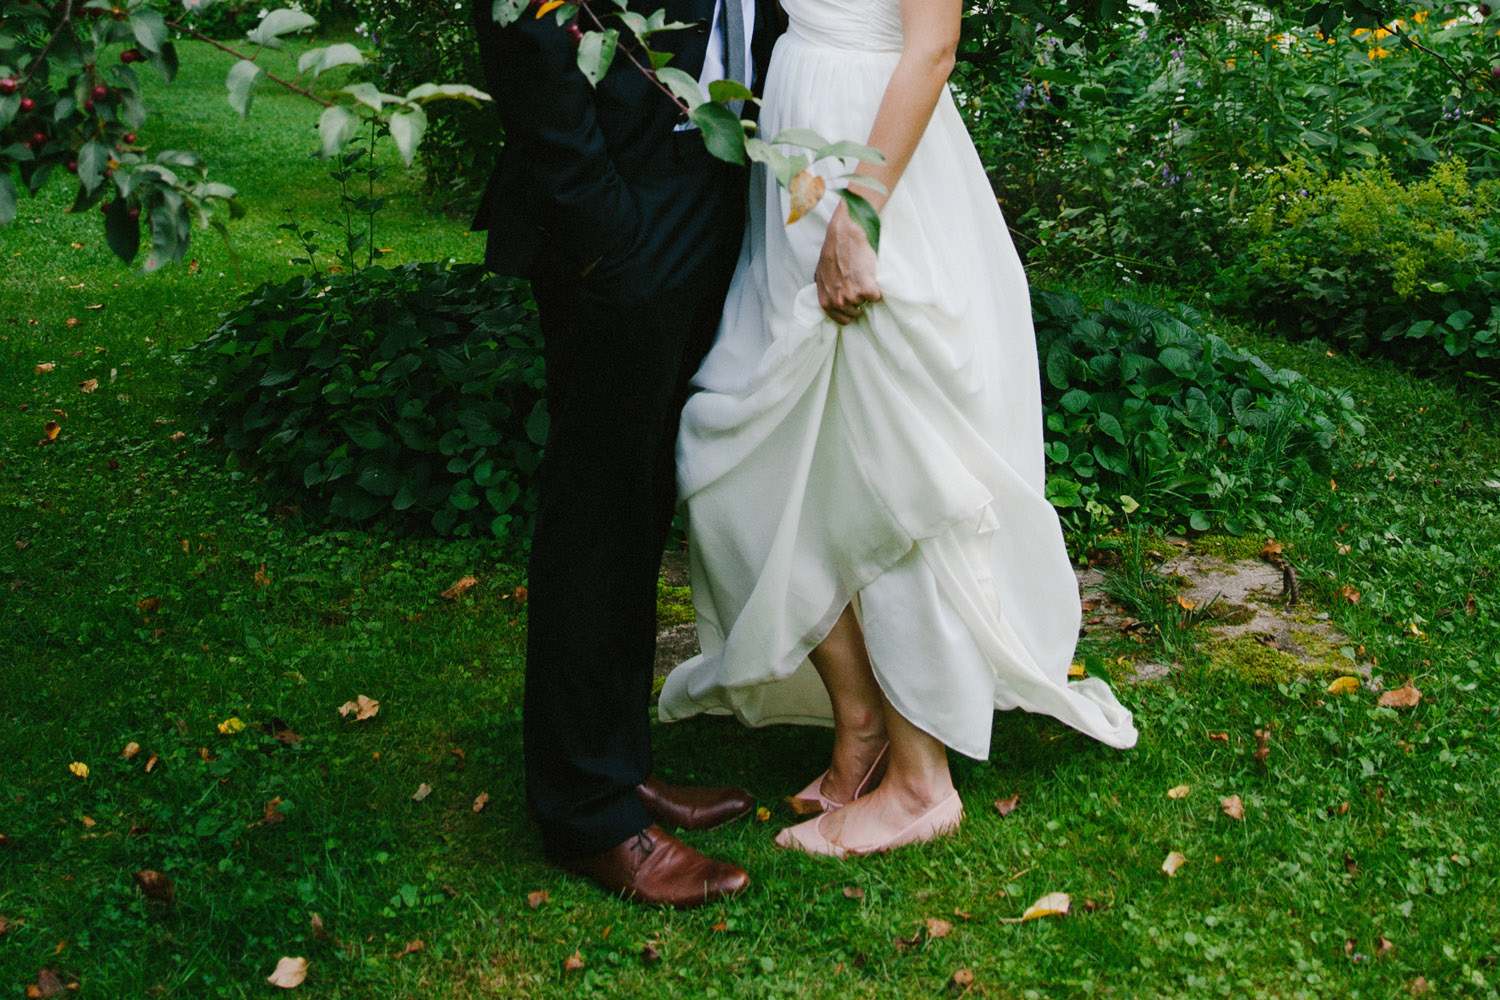 136-IntimateQuebecGardenWedding.jpg